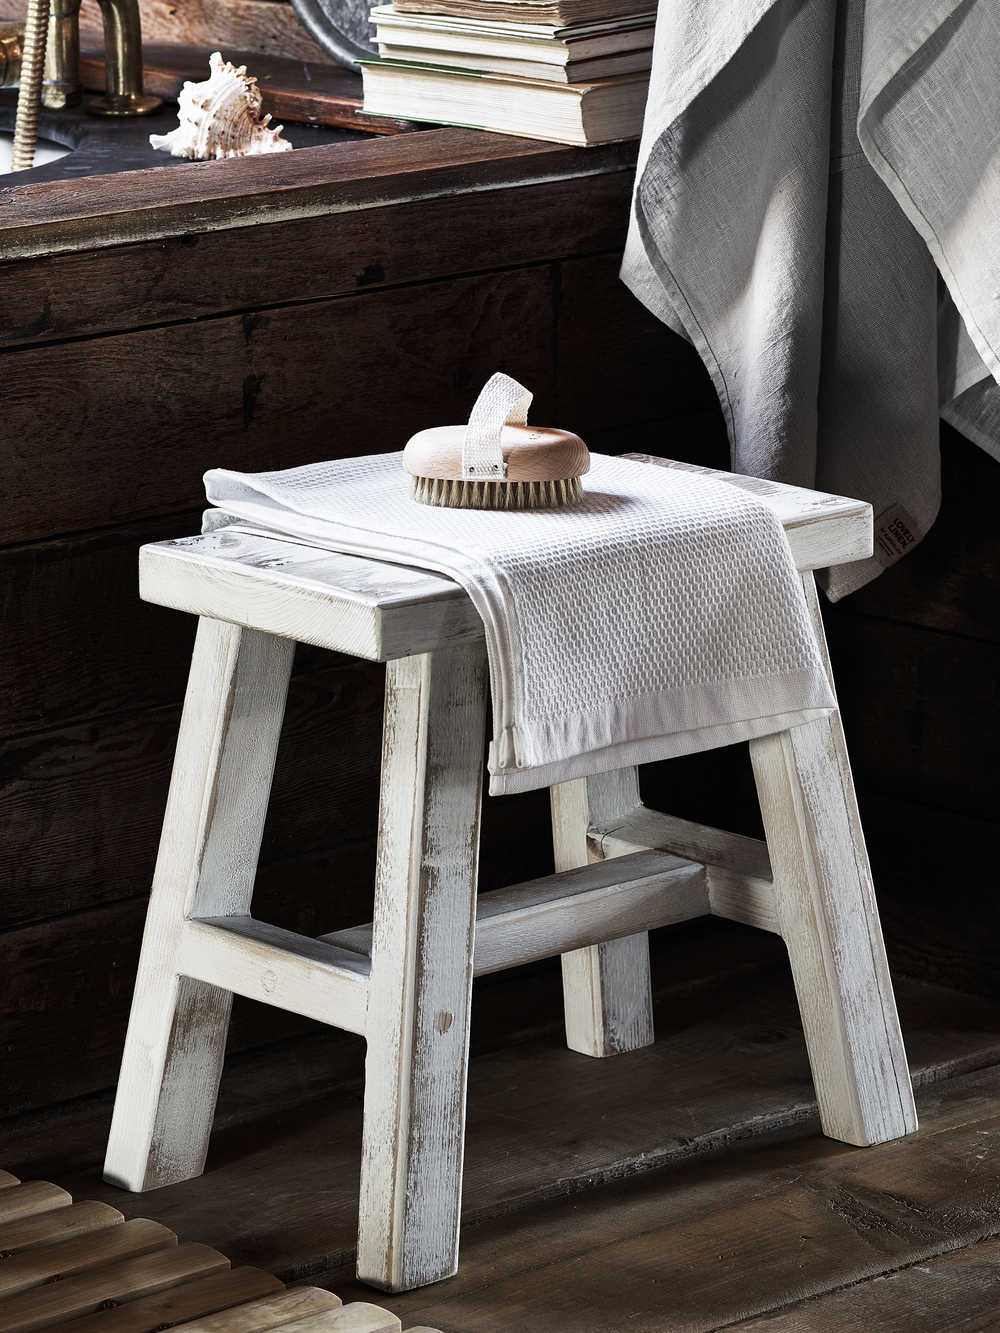 Surprising Rustic Wooden Milking Stool White Washed Gamerscity Chair Design For Home Gamerscityorg